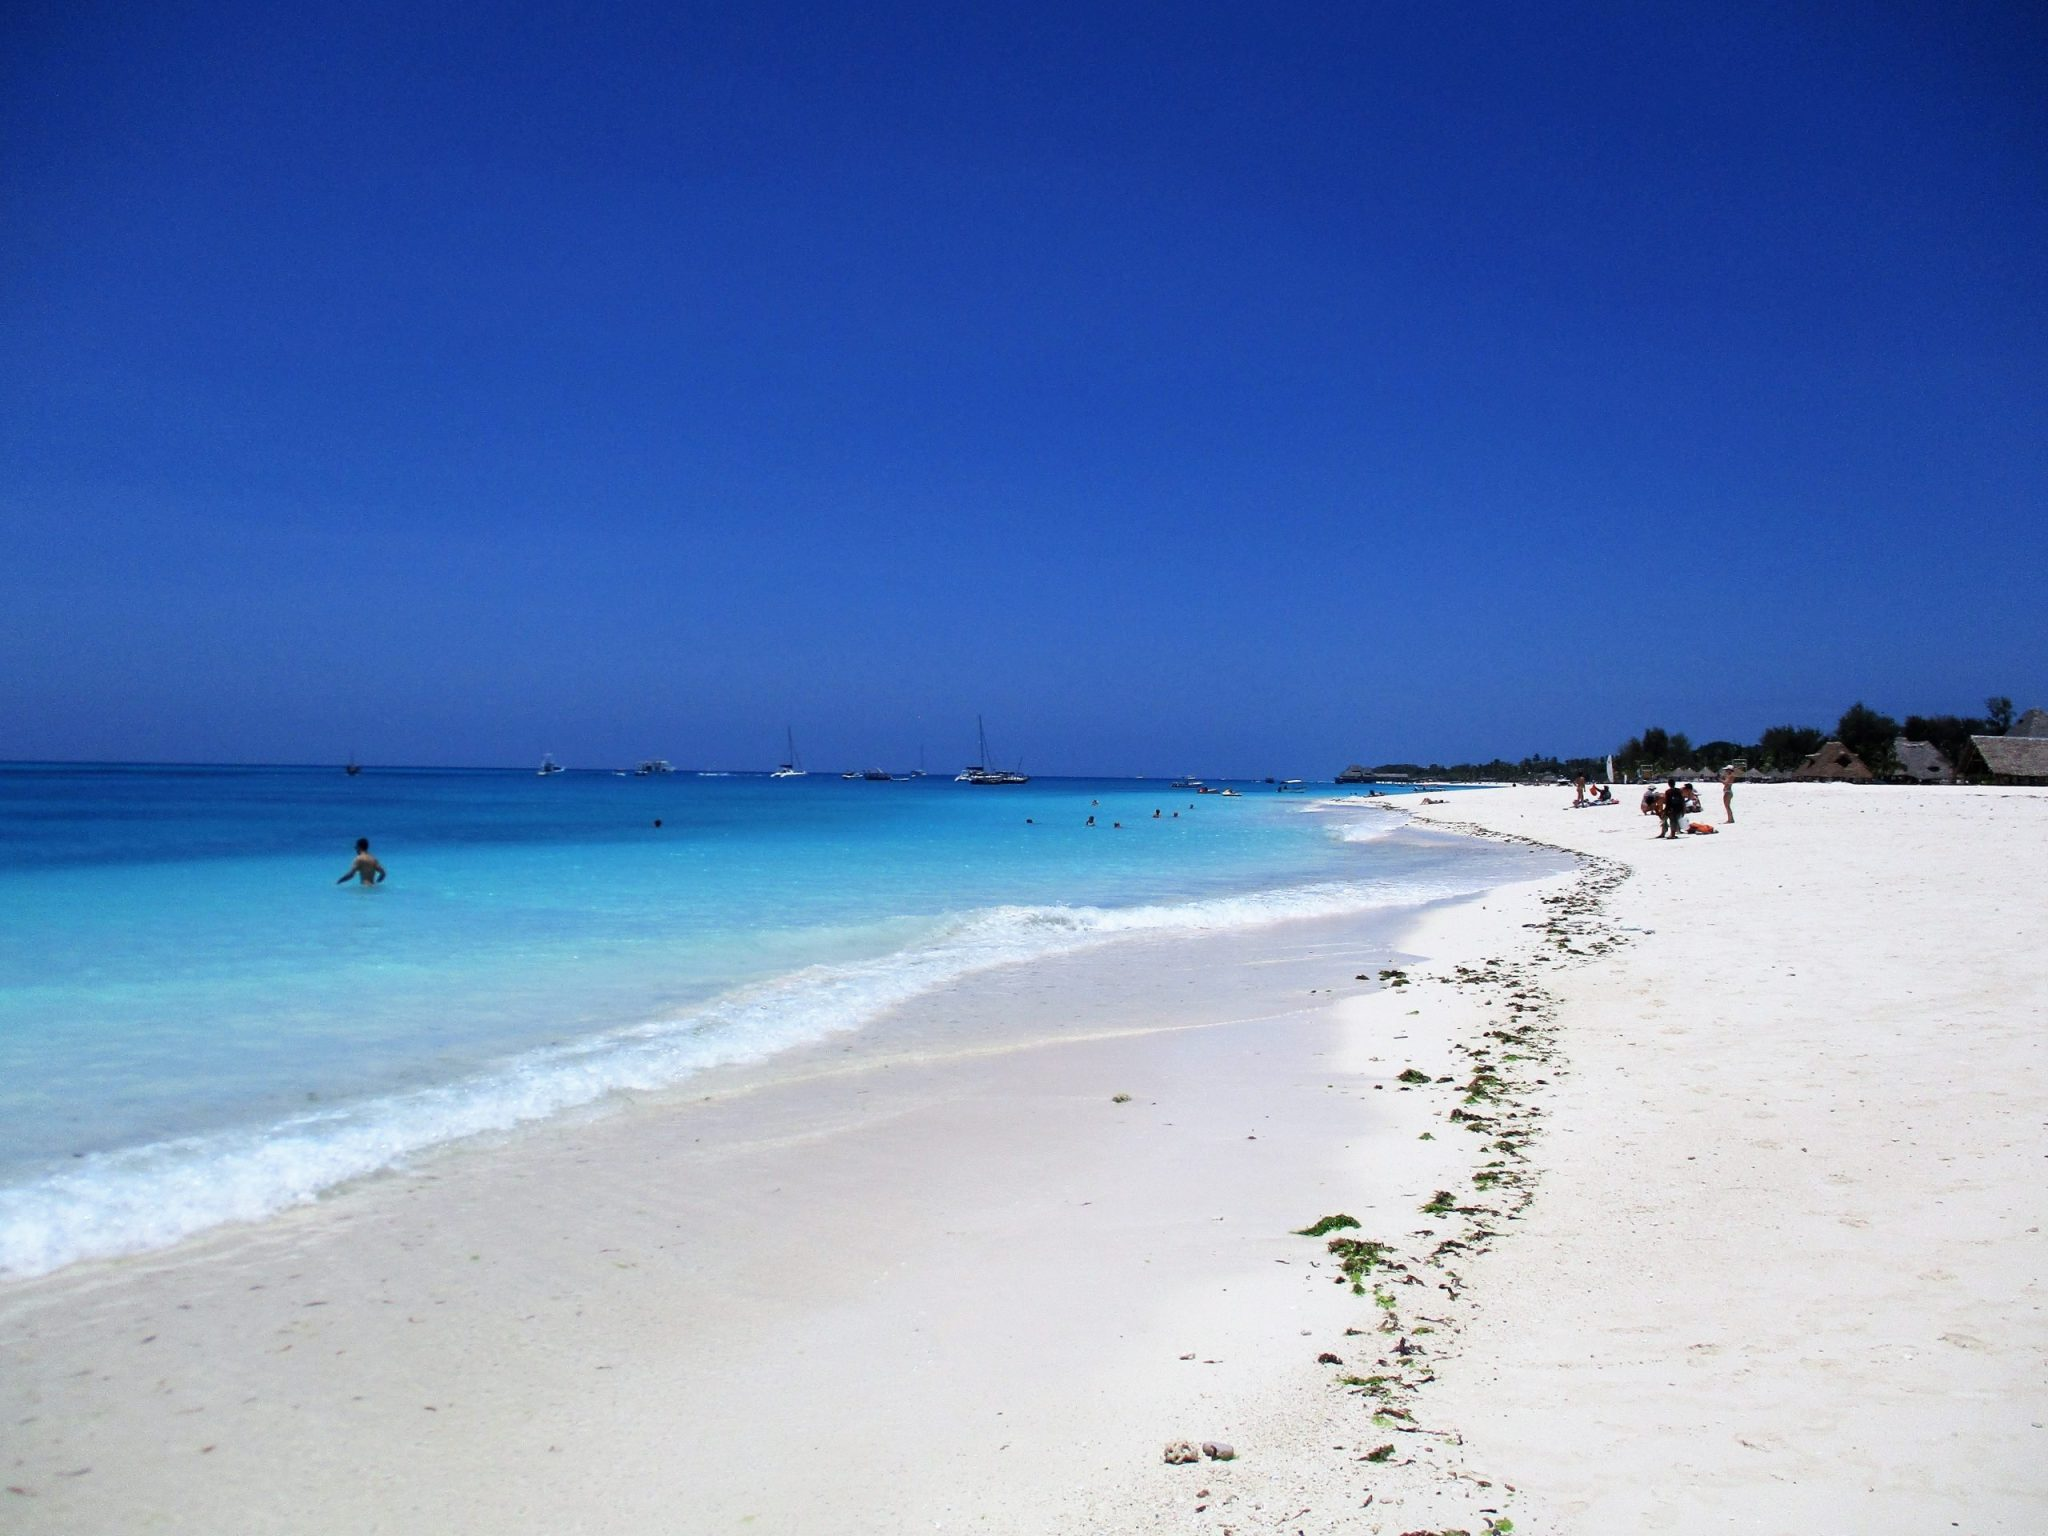 The Beach - one of the best reasons to visit Zanzibar